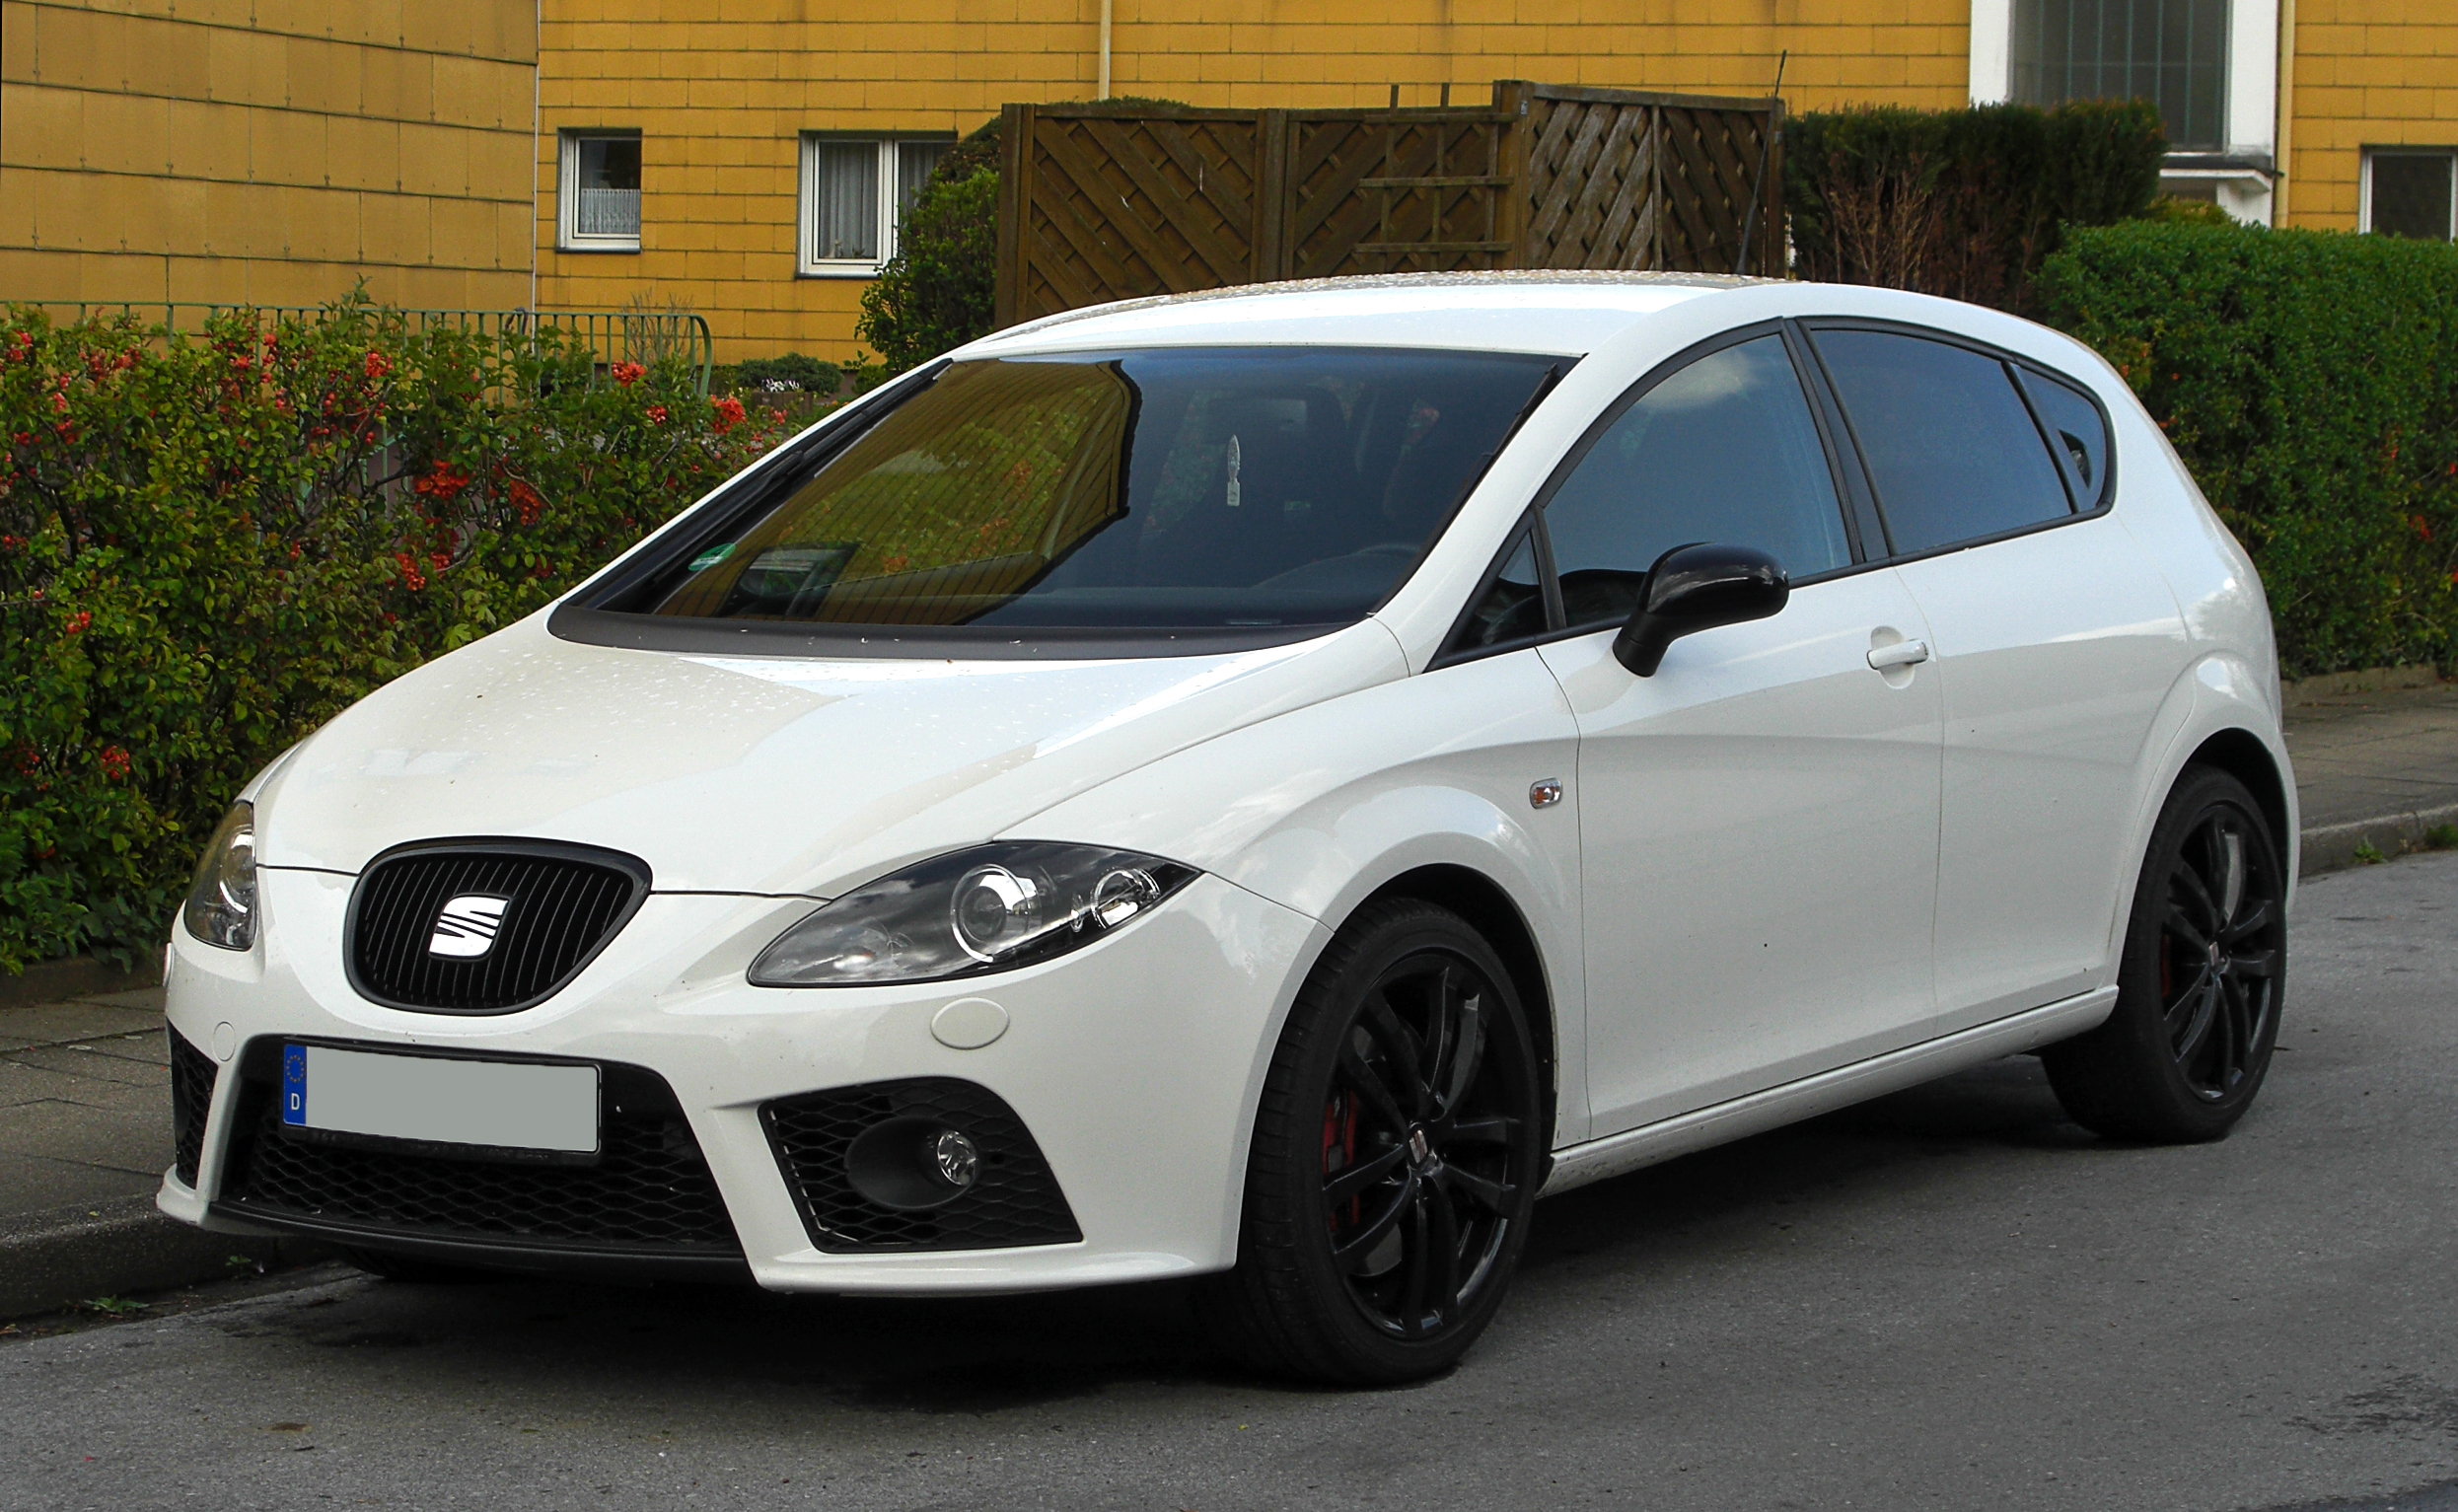 fil seat leon cupra 1p frontansicht 12 april 2011. Black Bedroom Furniture Sets. Home Design Ideas